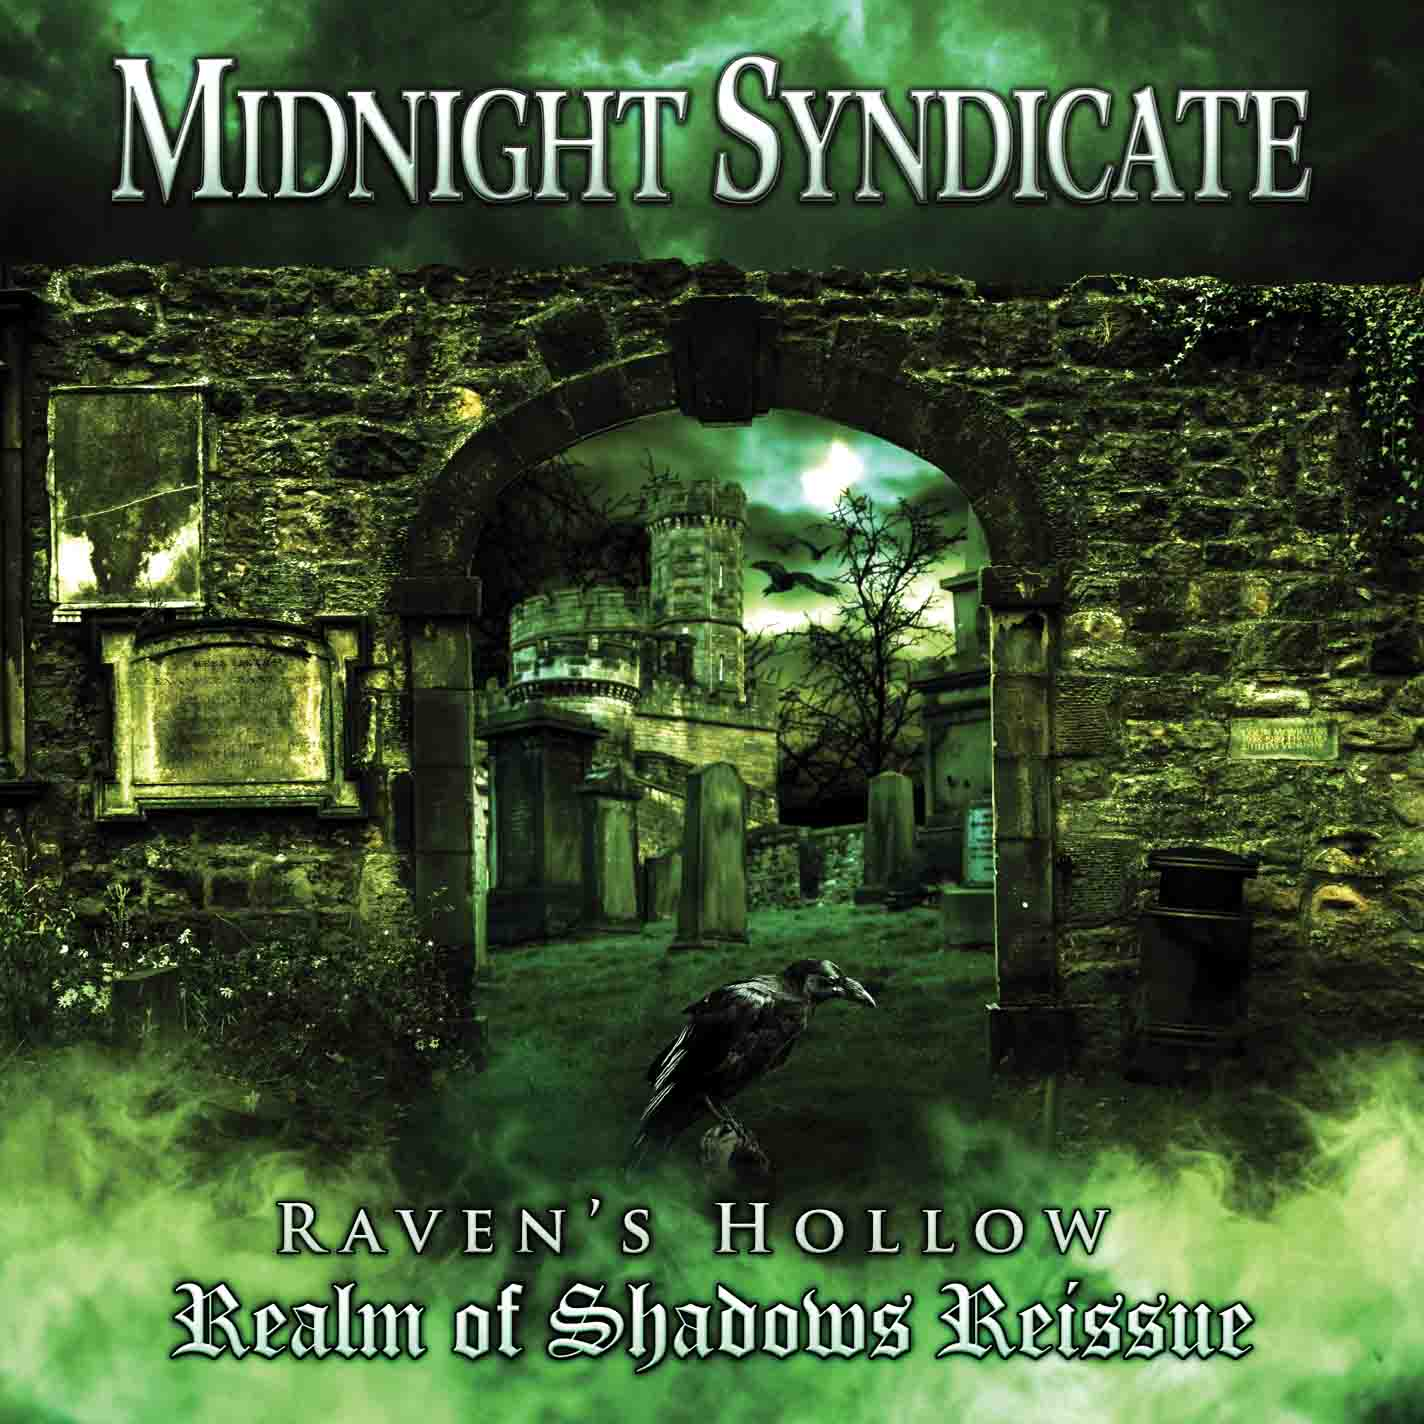 midnight syndicate grisly reminder mp3 download